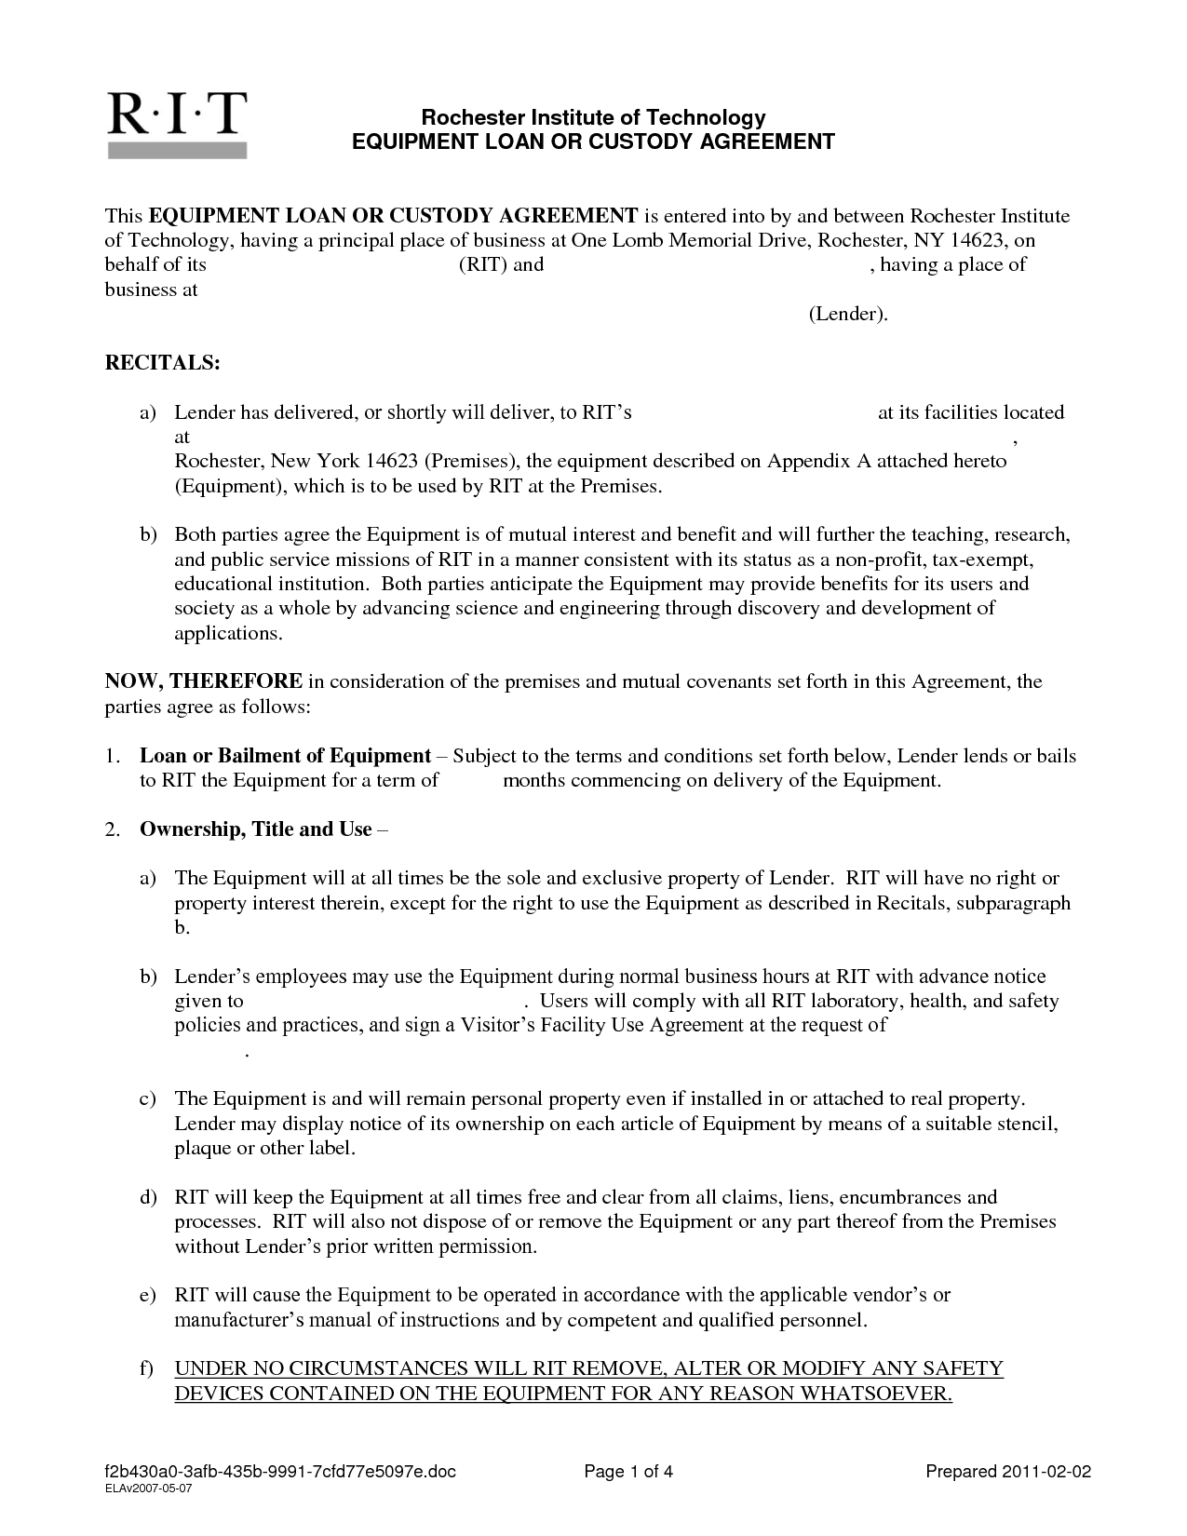 Free Simple Personal Loan Agreement Template 100 Bad Inside Corporate Credit Card Agreement Template In 2020 With Images Bad Credit Car Loan Personal Loans Contract Template